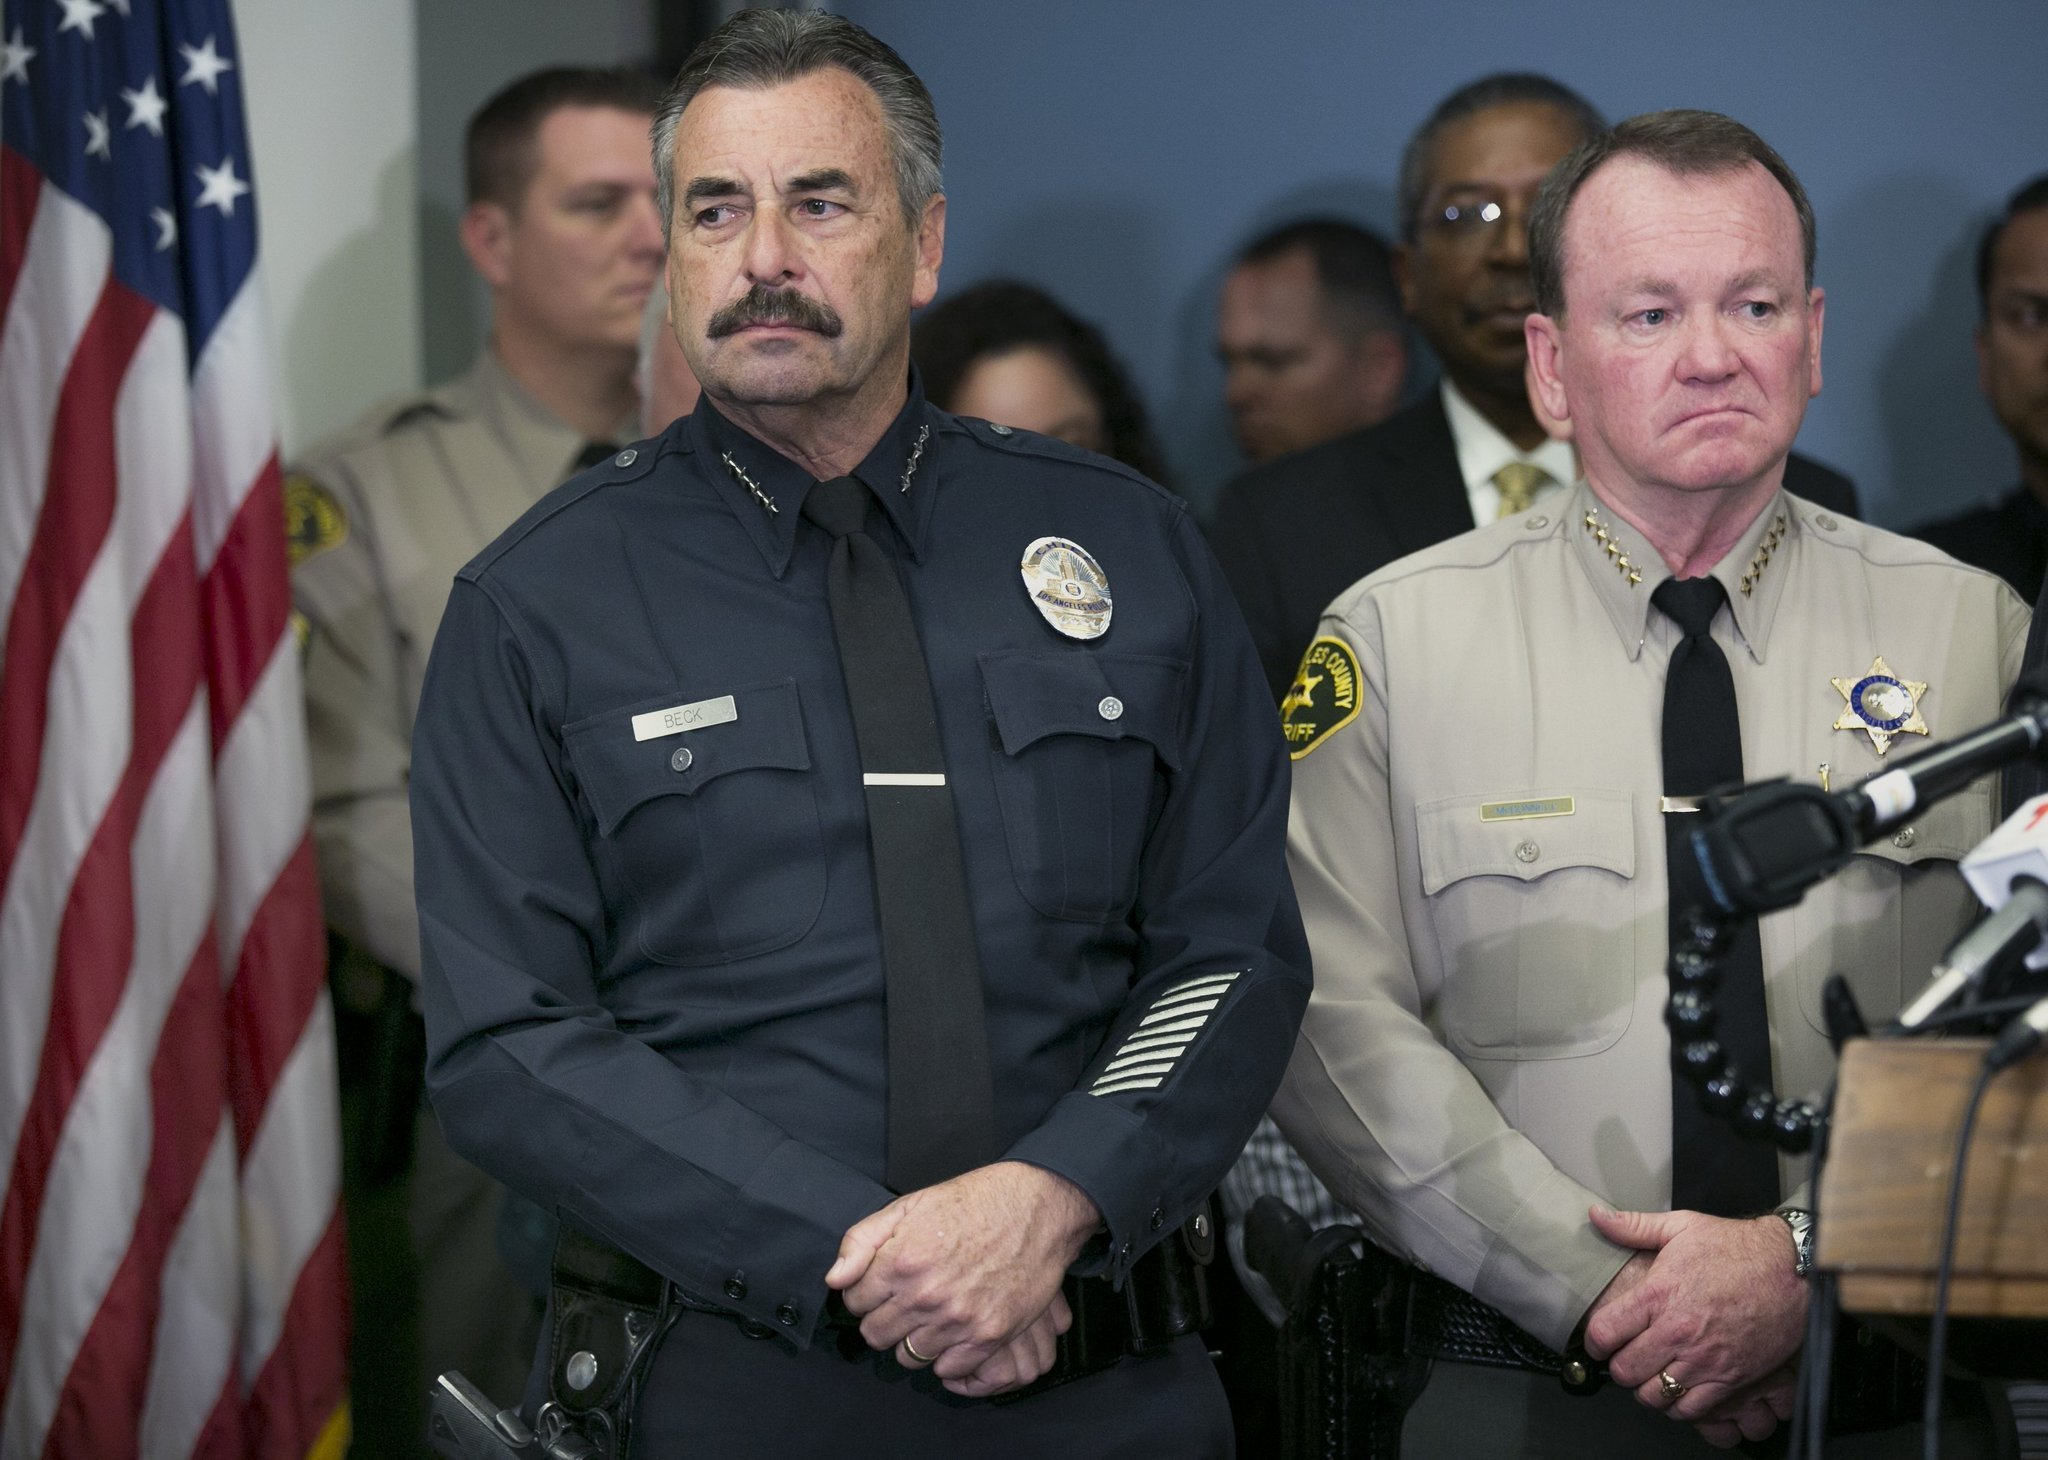 Accidentally paralyzed ex-LAPD cop settles with Glock gun maker ...